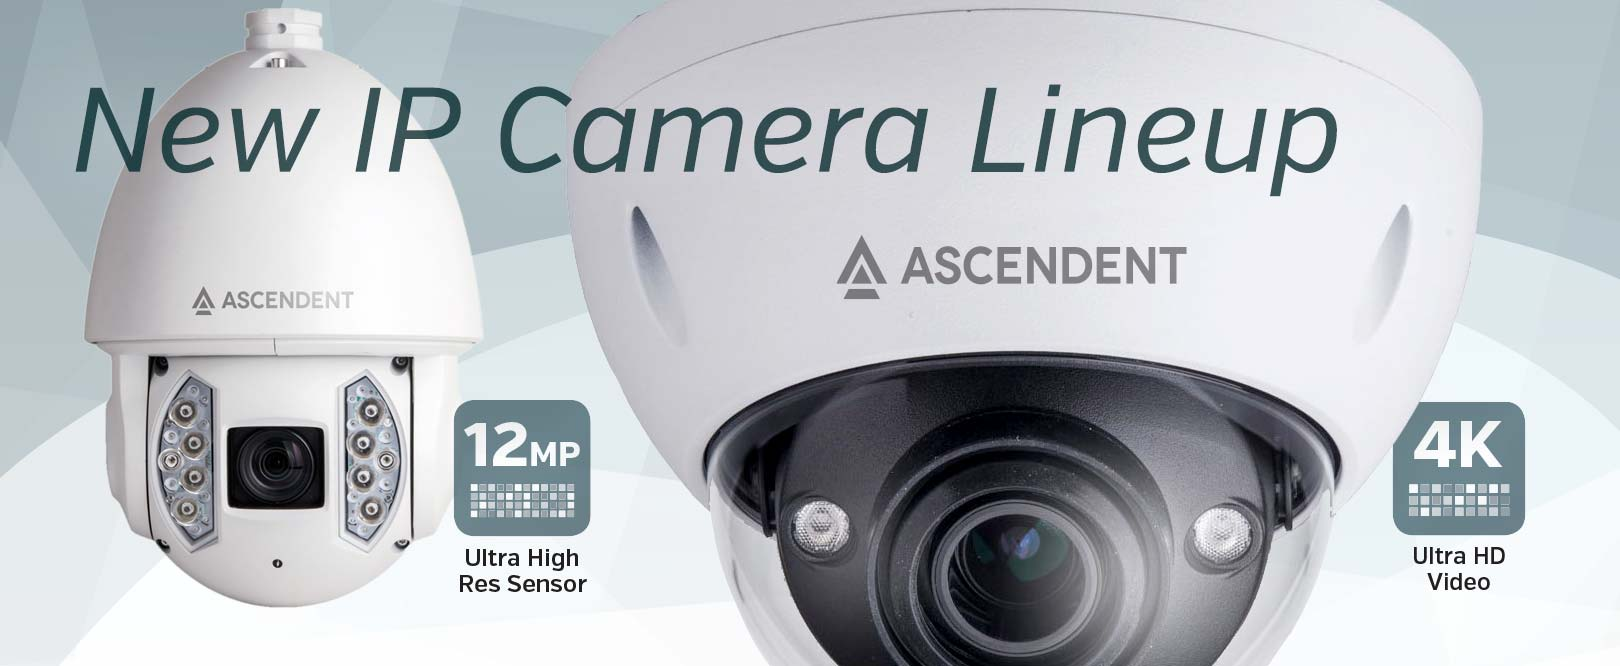 New IP Camera Lineup with 4K & 12MP options